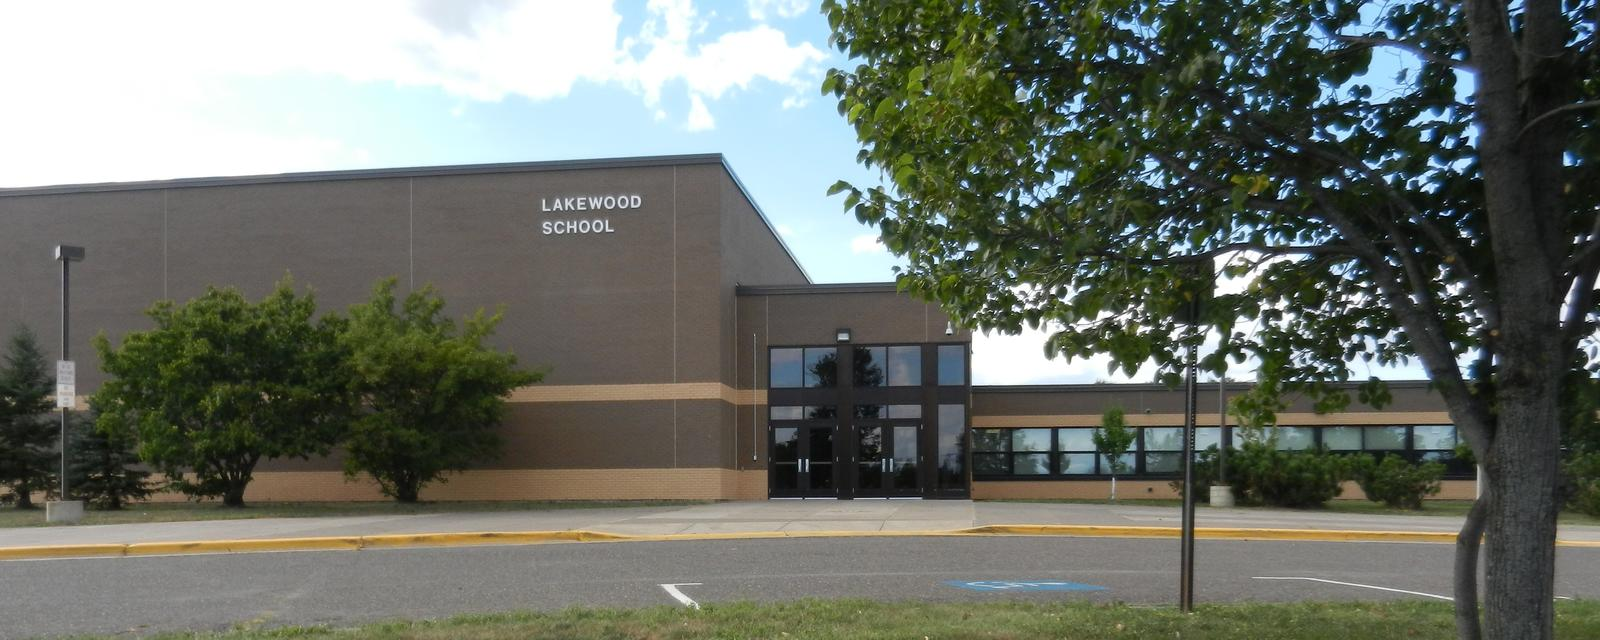 Lakewood School exterior